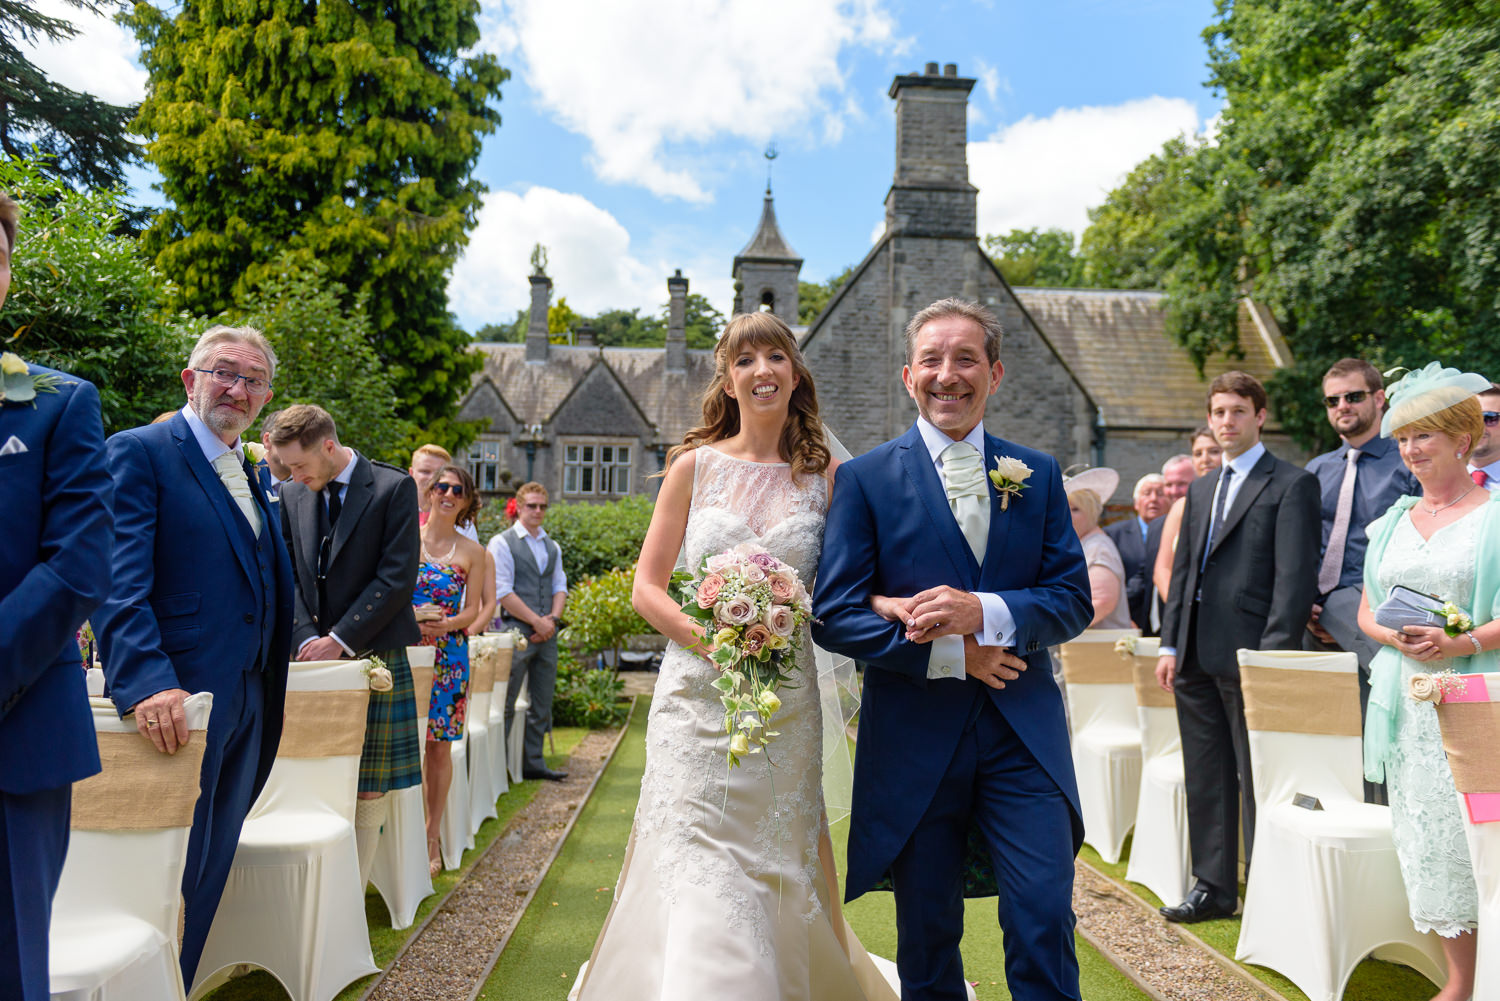 Outdoor wedding ceremony at Callow Hall